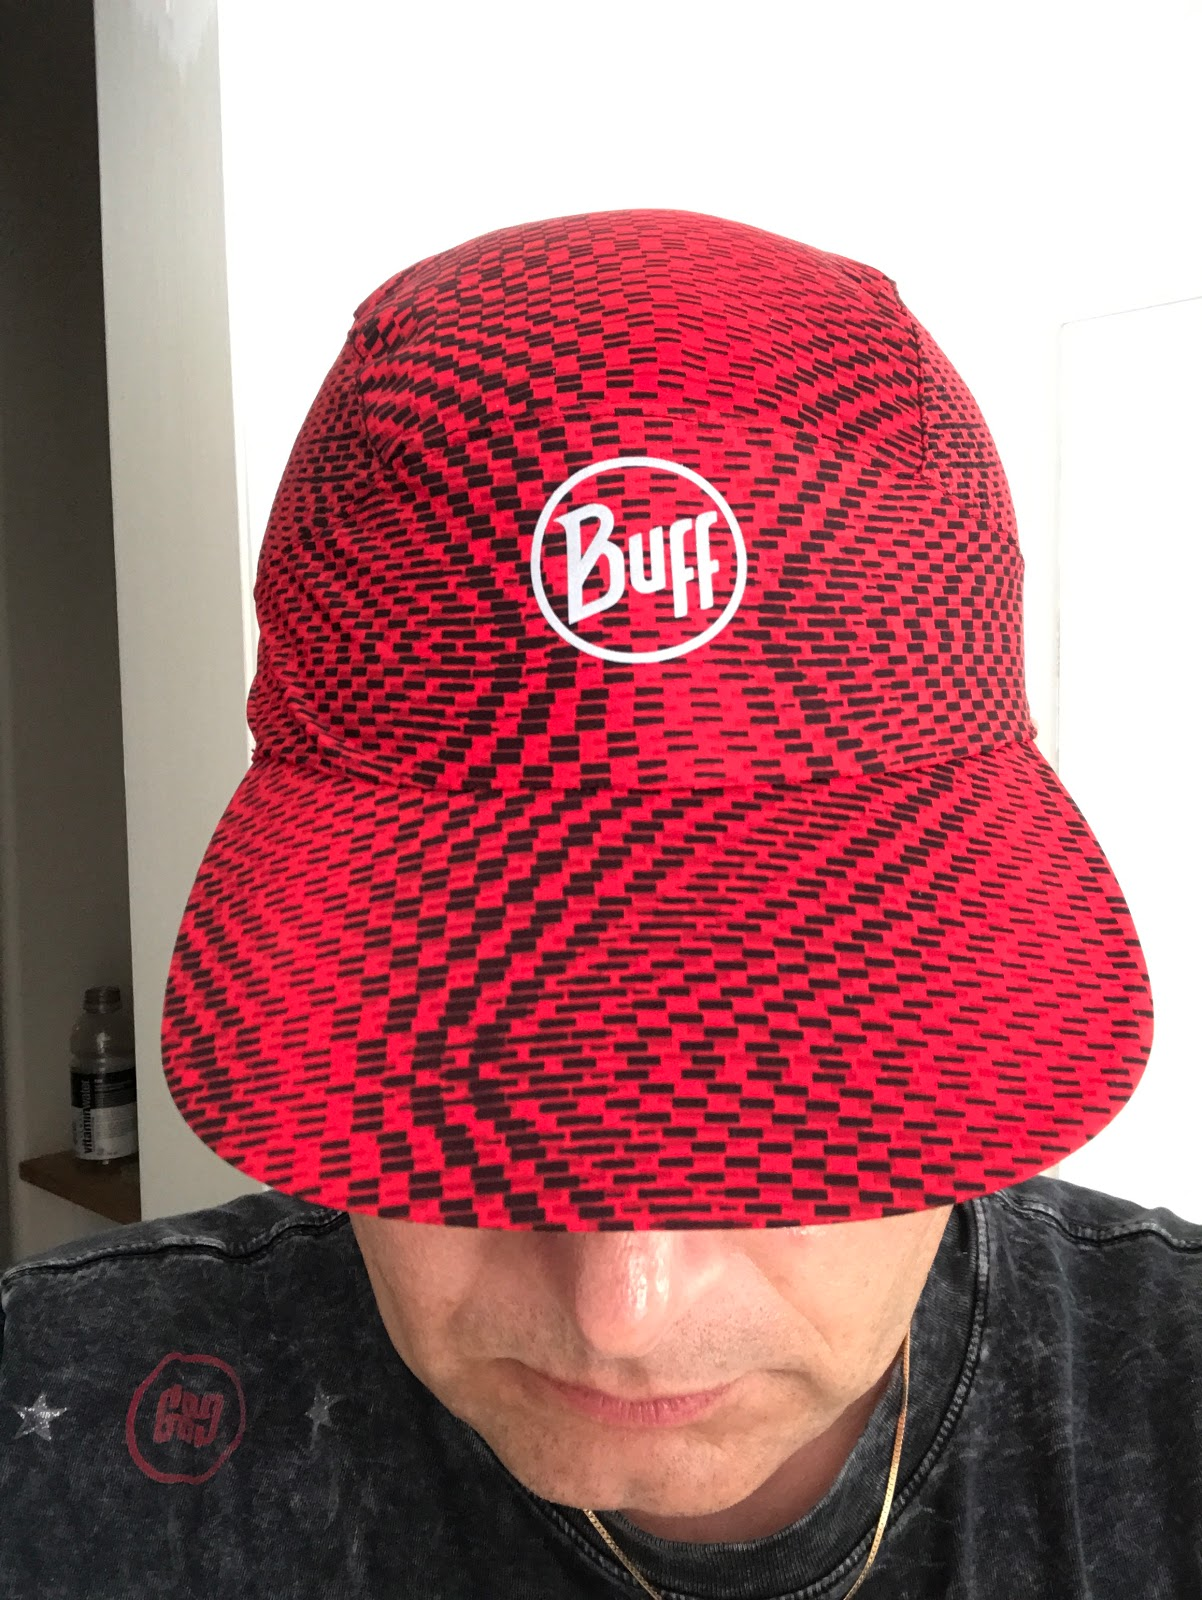 Buff Pack Run Cap Review And Bonus Thoughts On Run Cap Pro